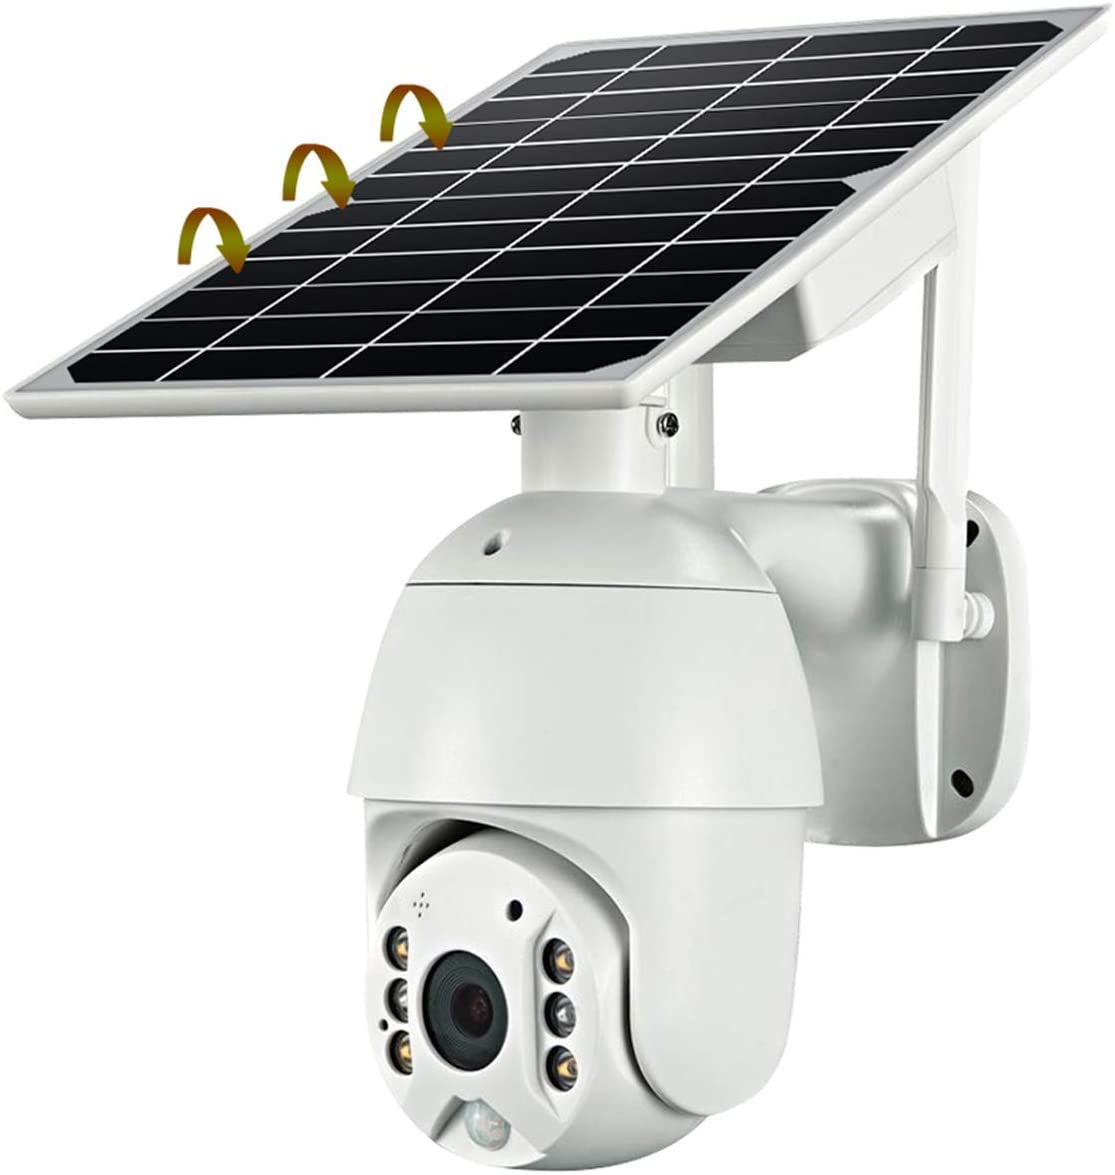 Bargain Wireless Solar Security Camera -1080P and HD Super special price WiFi Panel Re